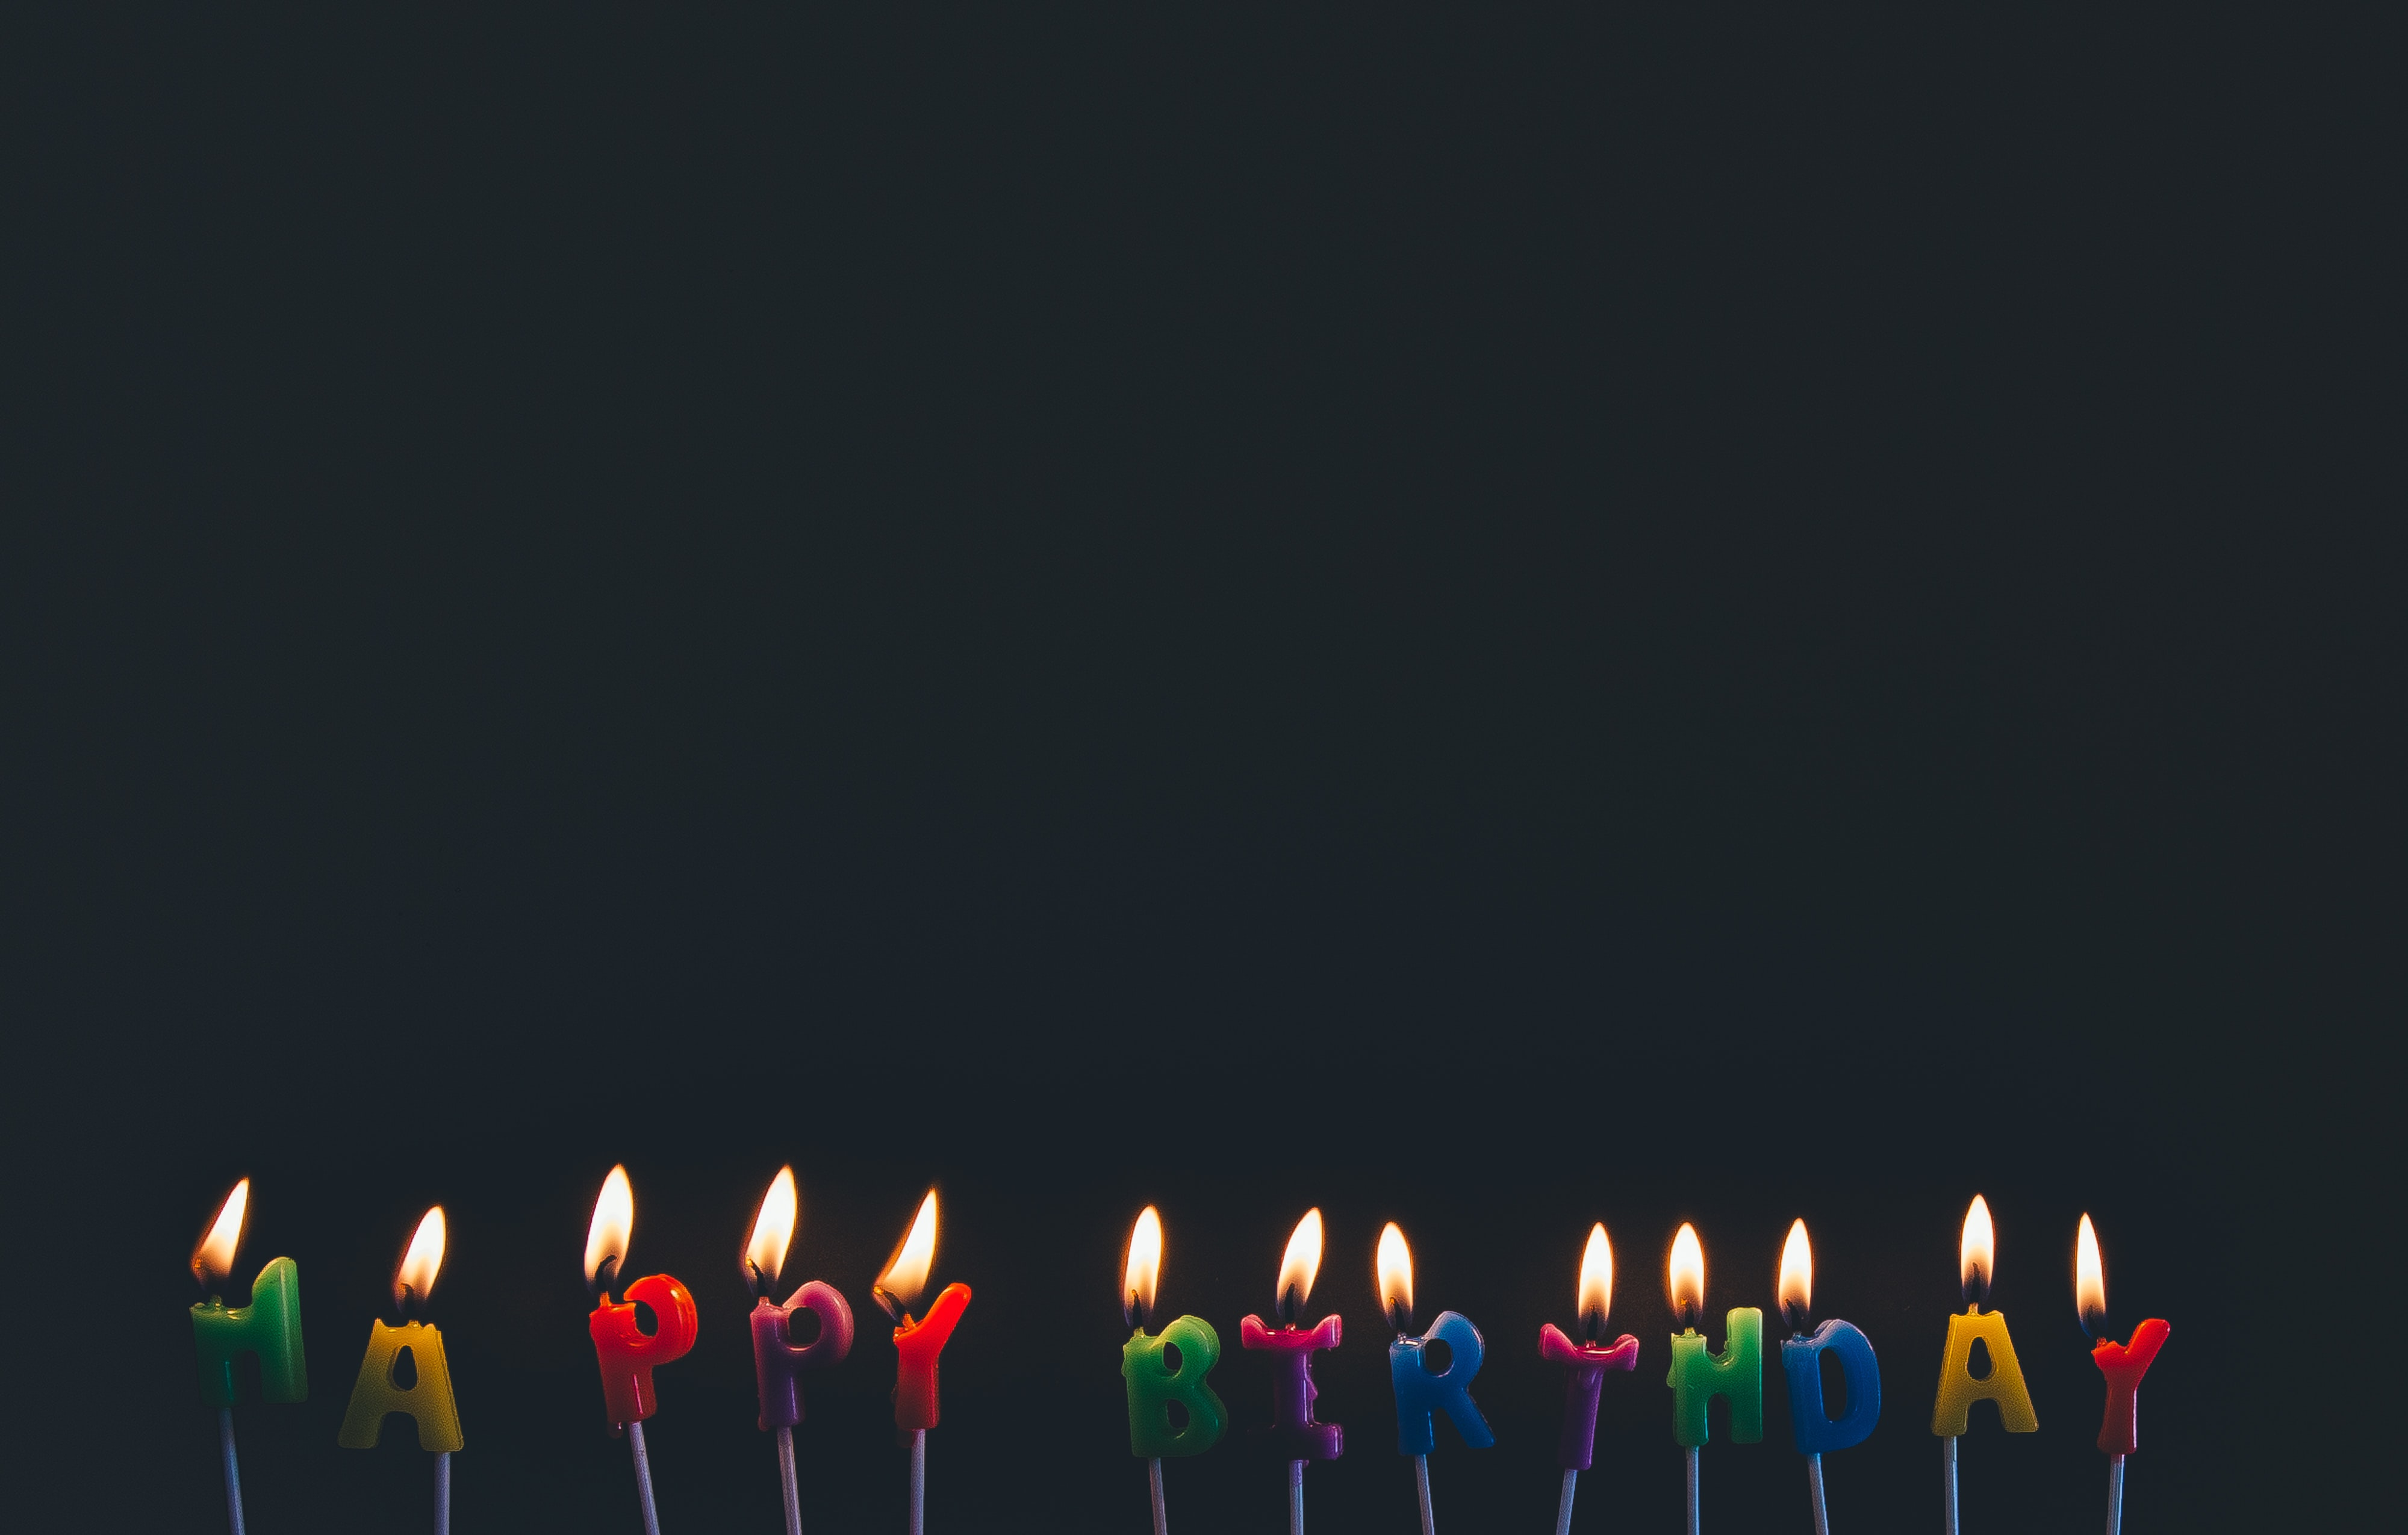 Birthday Wallpapers Free Hd Download 500 Hq Unsplash